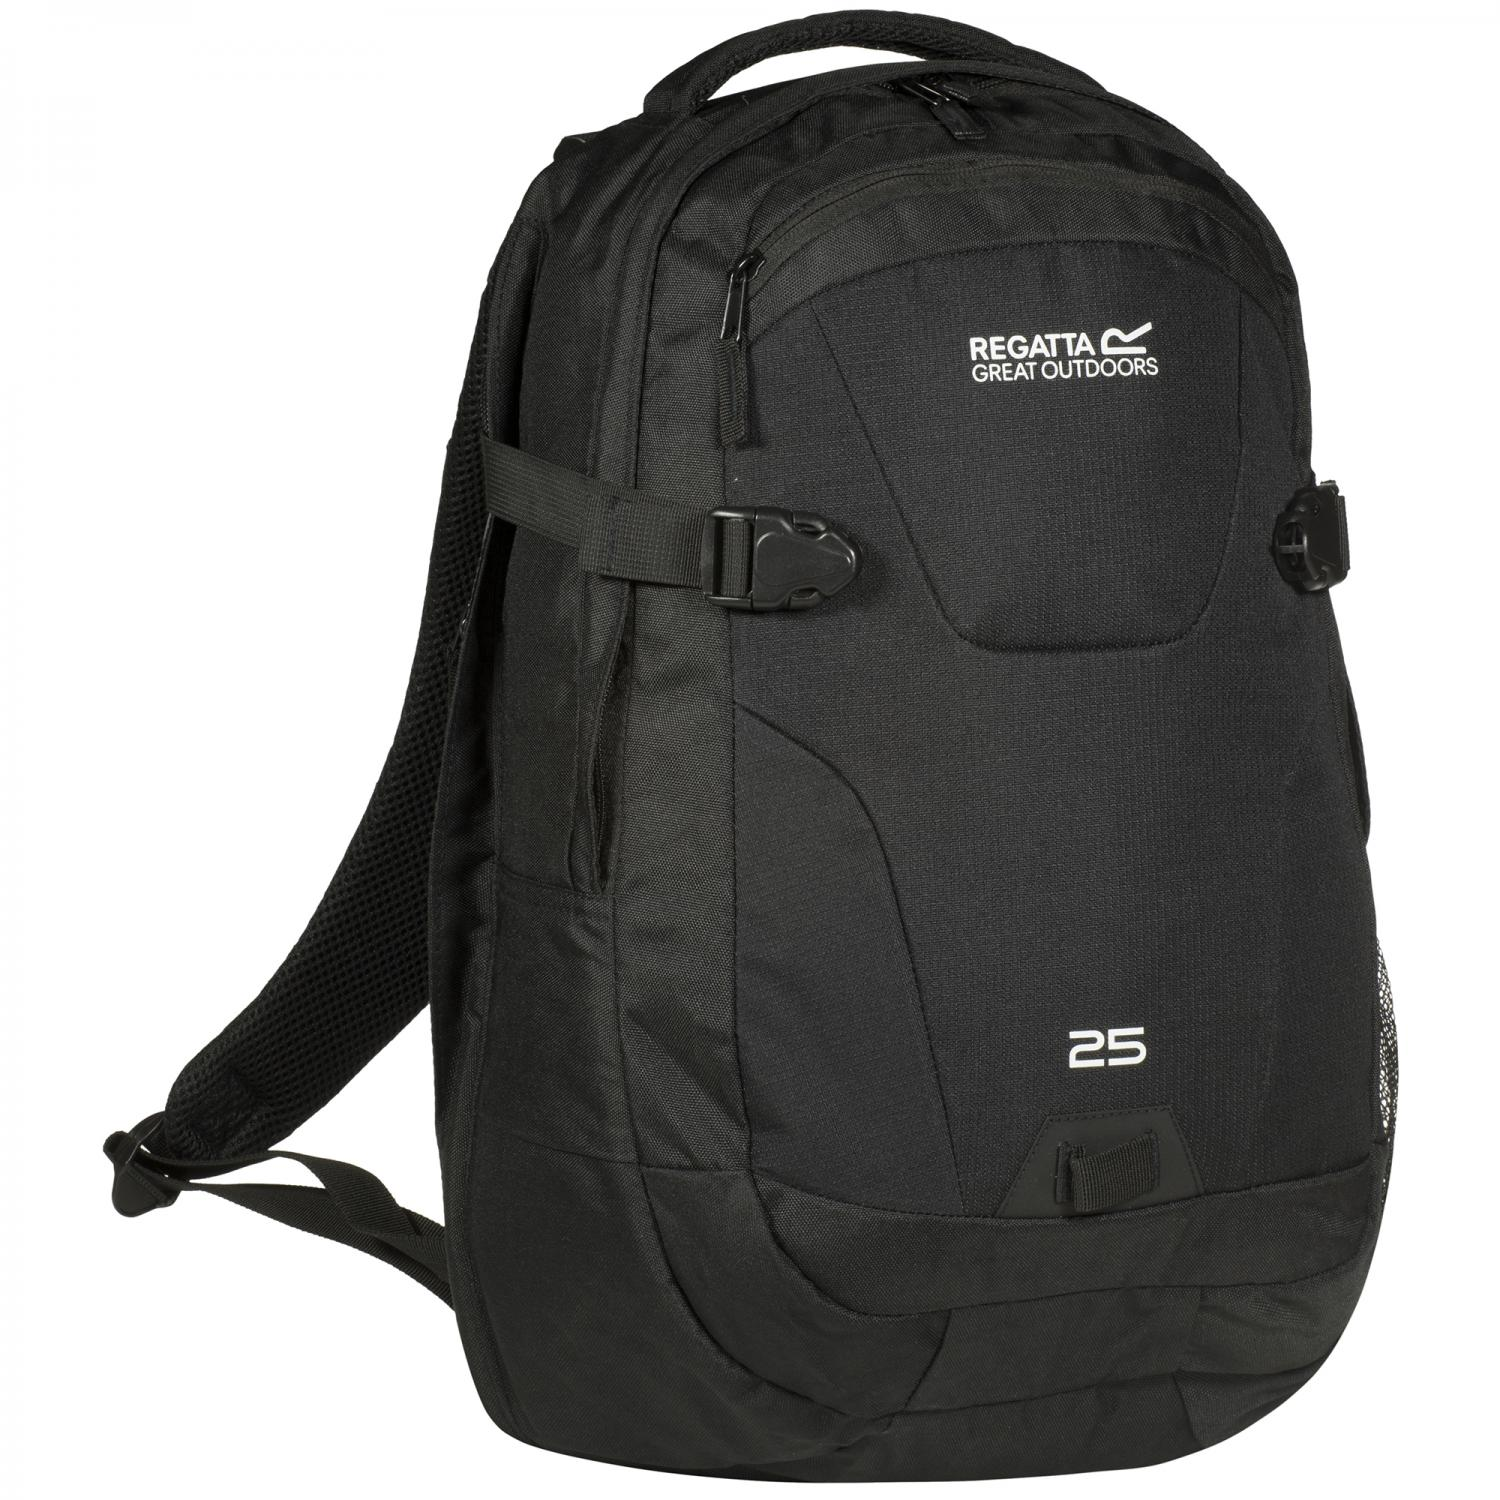 Paladen 25 Litre Laptop Backpack Black